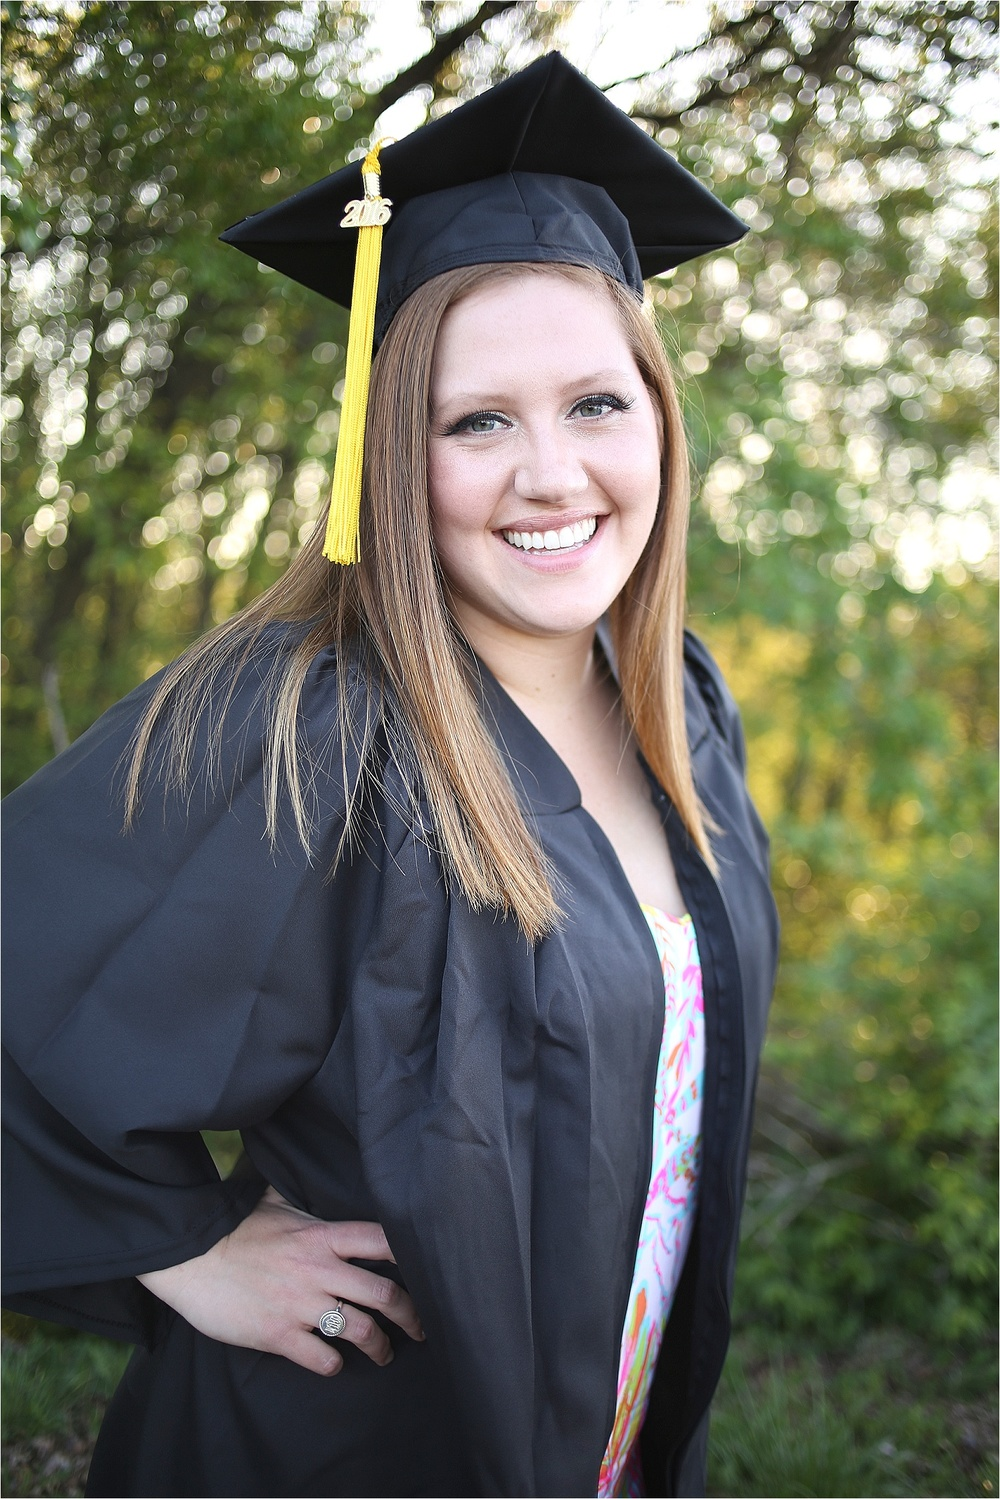 Blacksburg-Senior-Portrait-Photographer-Nursing-School-Graduation-Photos-_0016.jpg